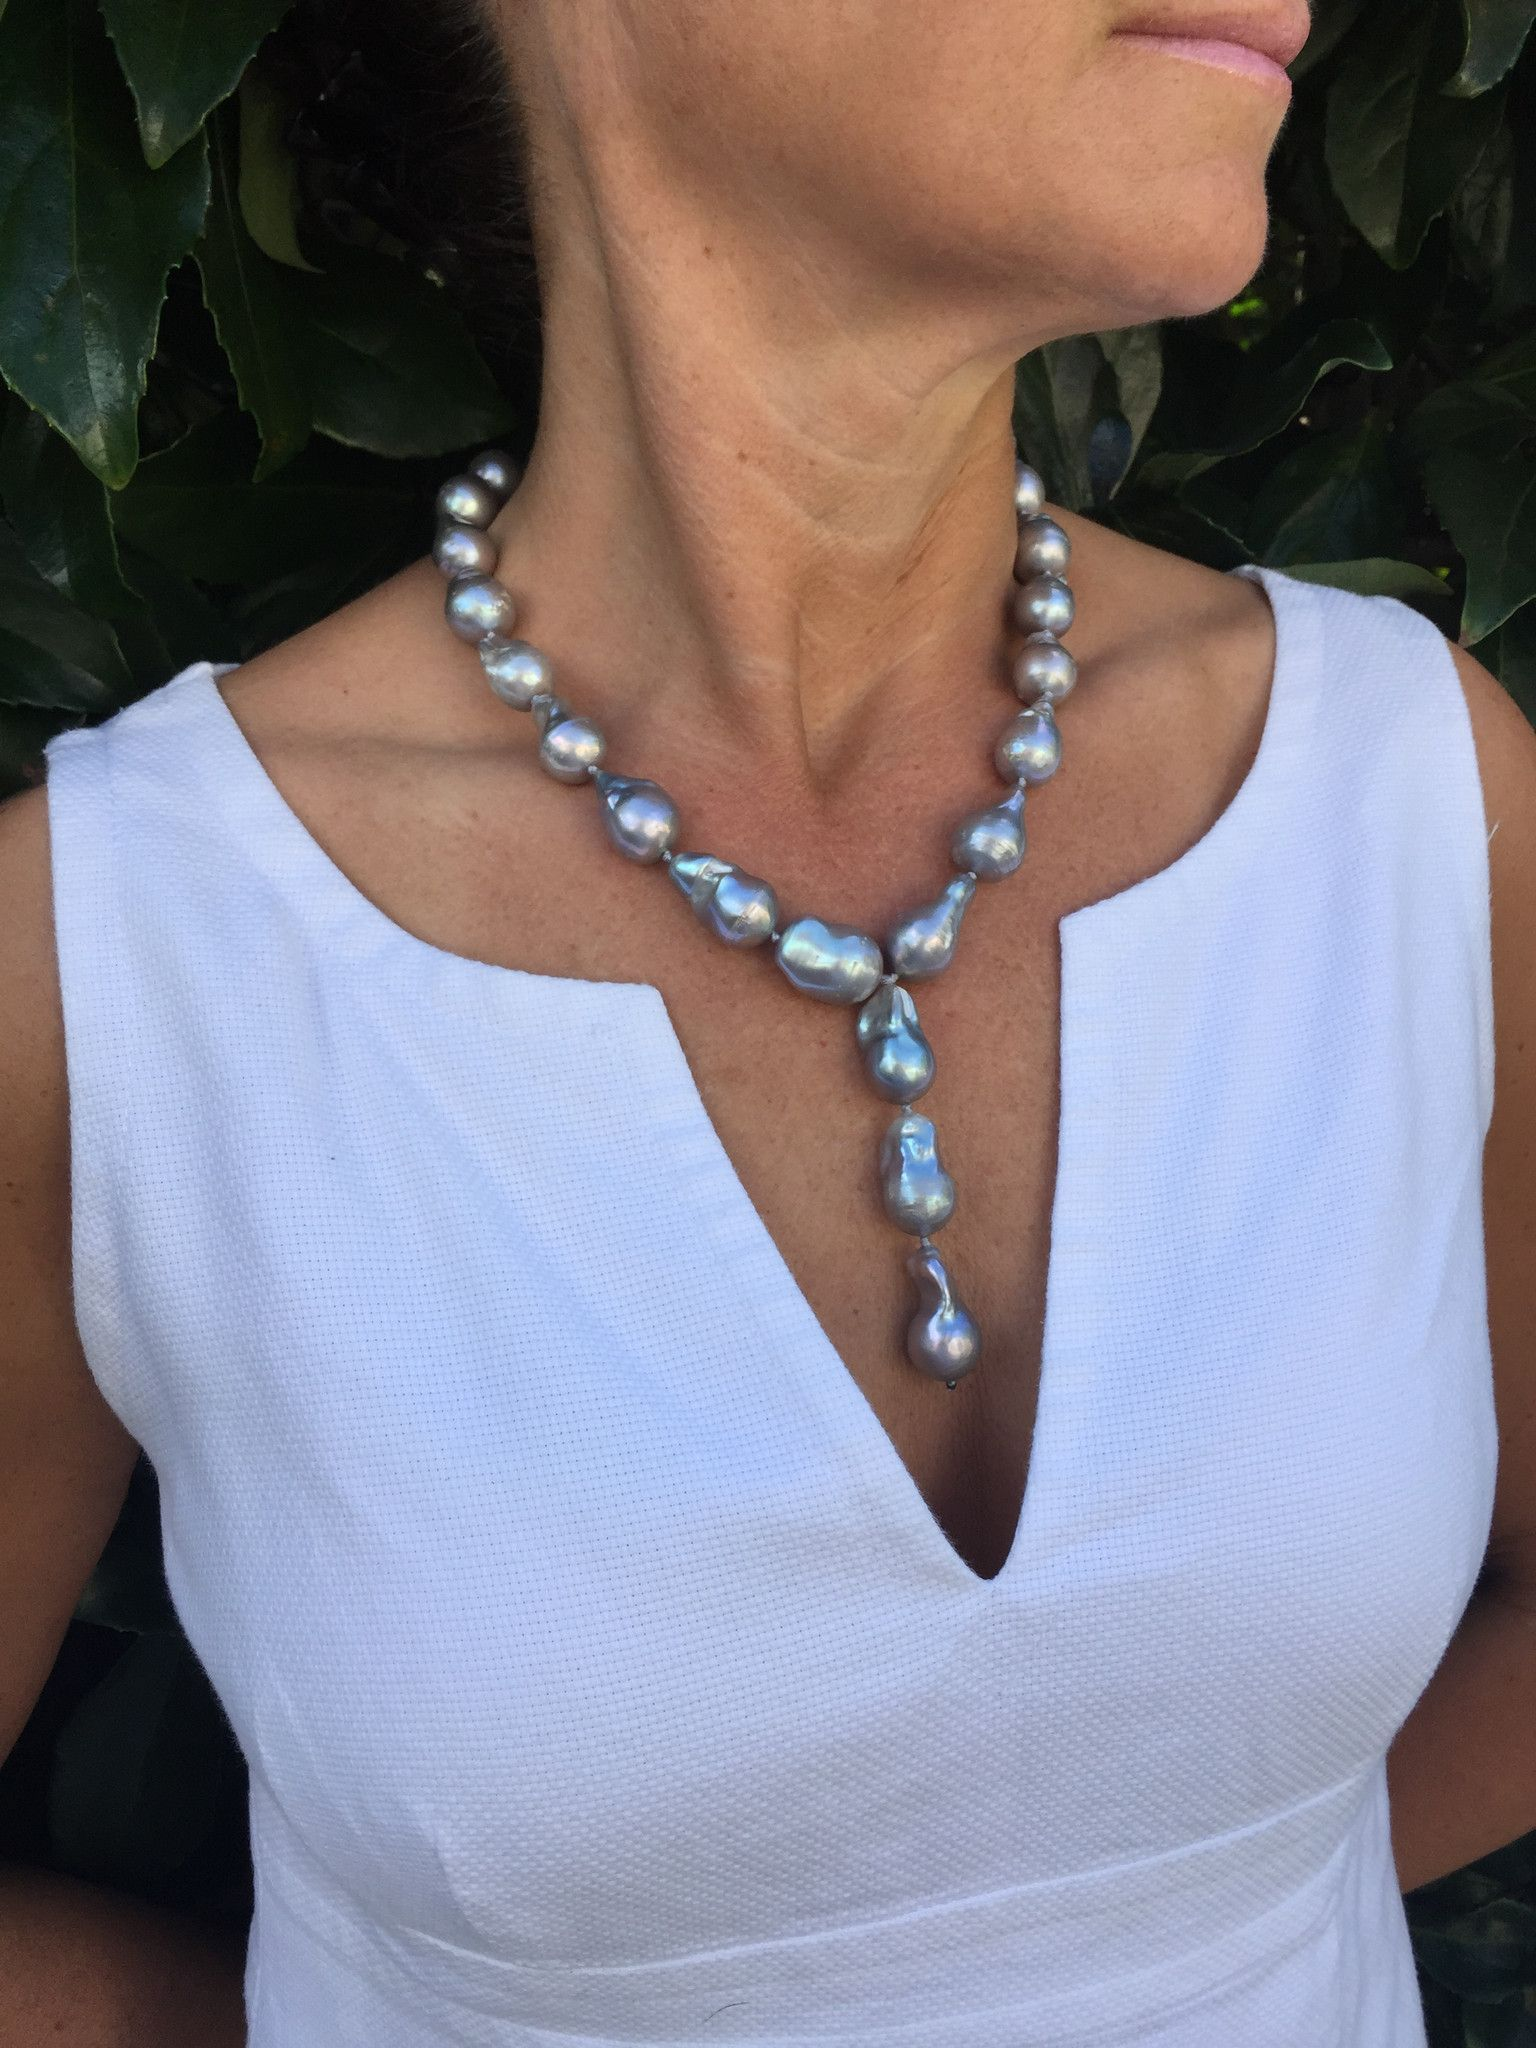 d777521421c86e Short Drop Necklace with Grey Baroque Pearls Our natural baroque pearl  necklace features vintage style freshwater